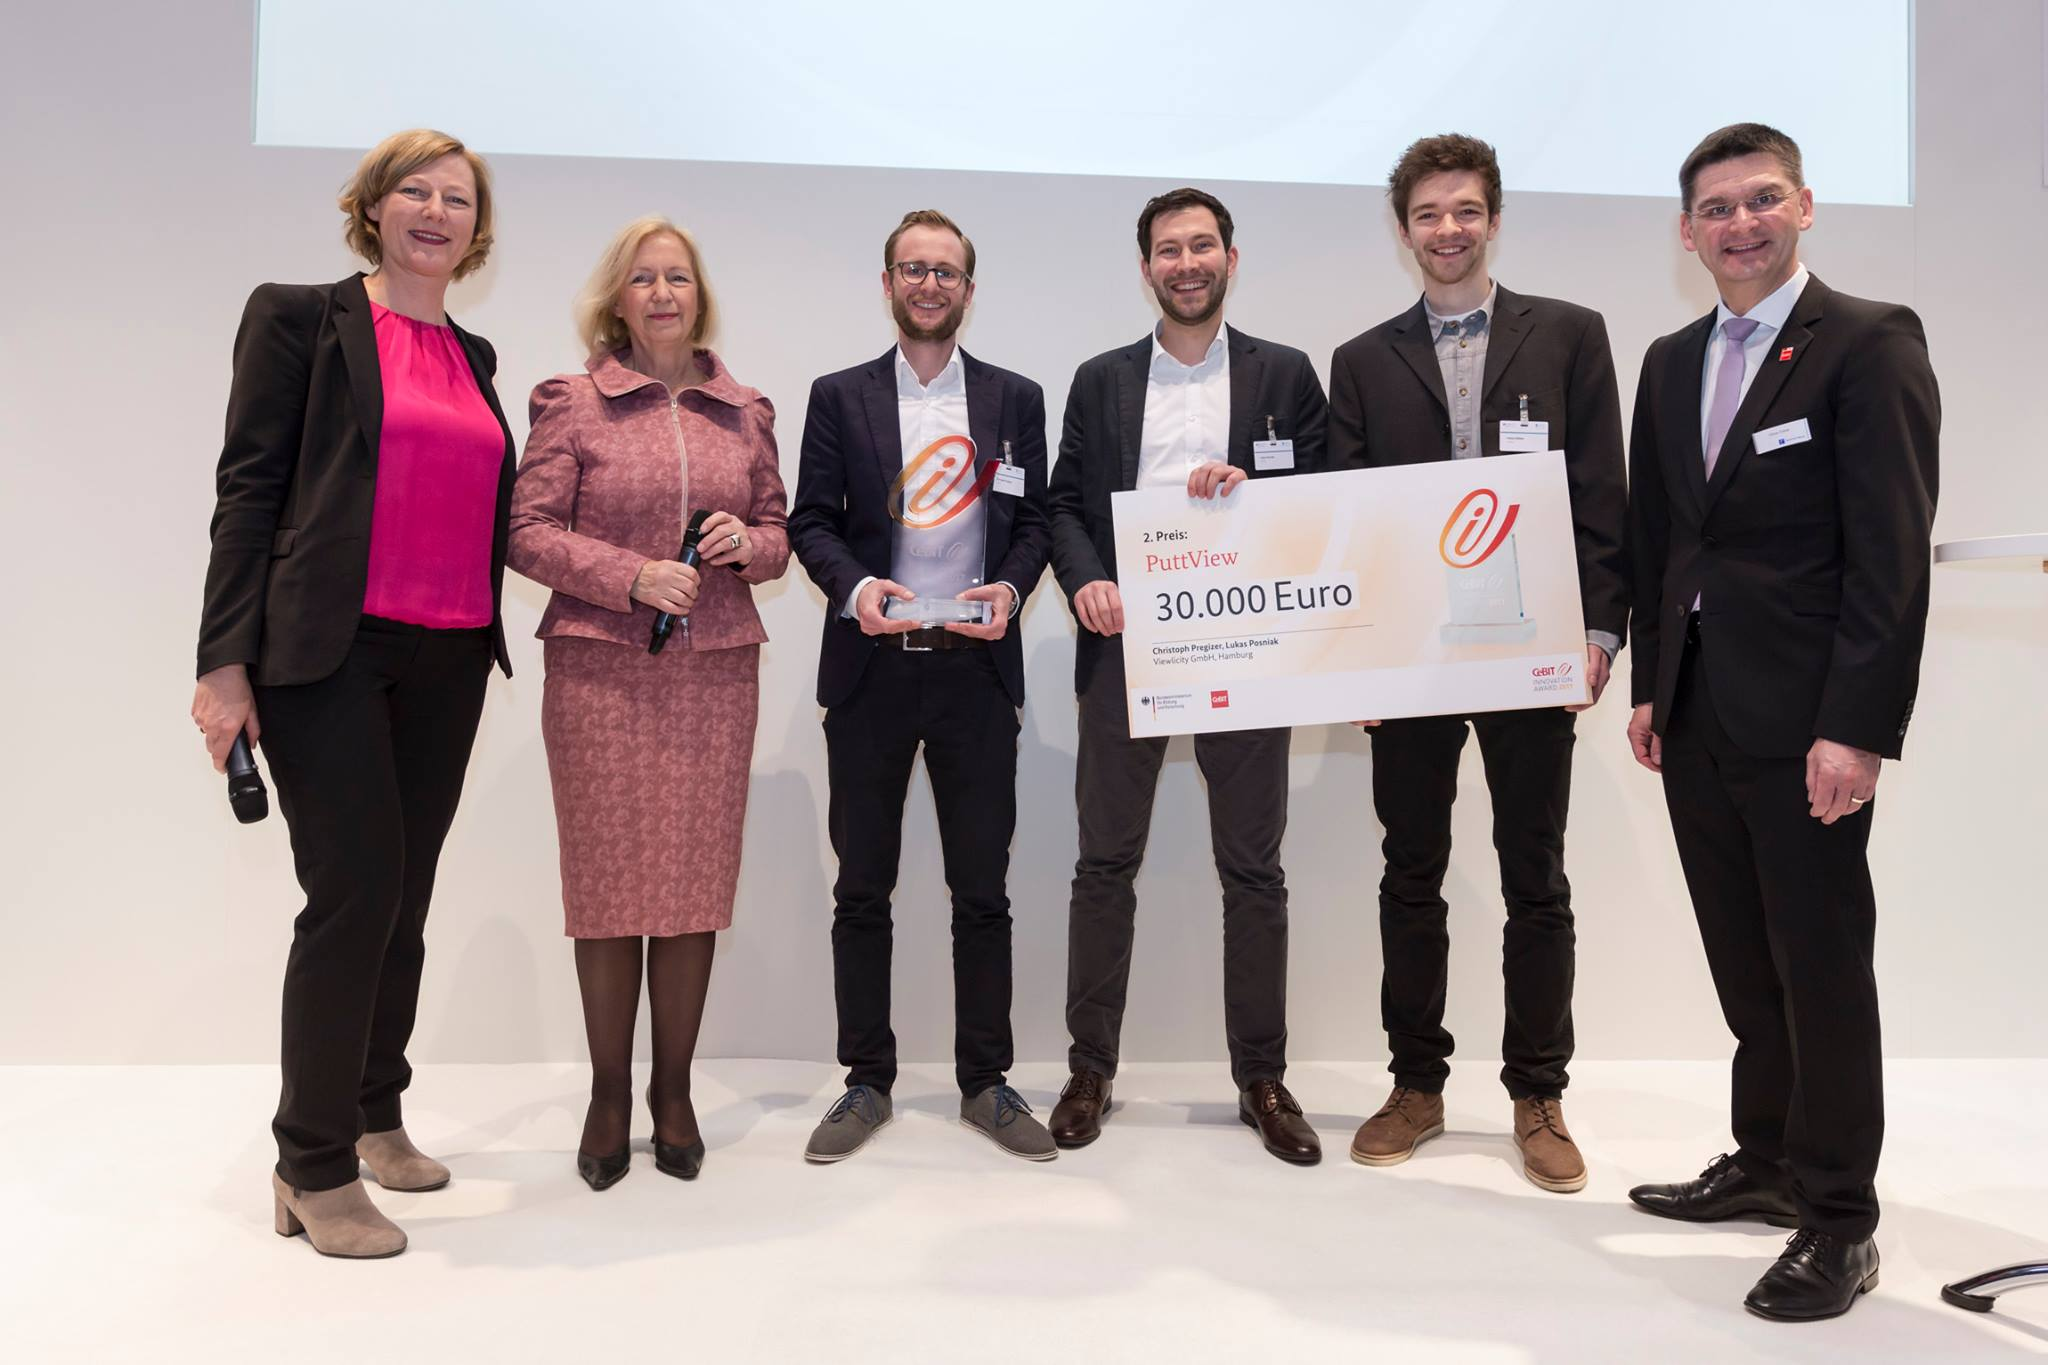 PuttView has managed to win multiple awards, including a second place at the CeBit Innovation Award 2017. The prize money was 30.000 Euros. © puttview.com